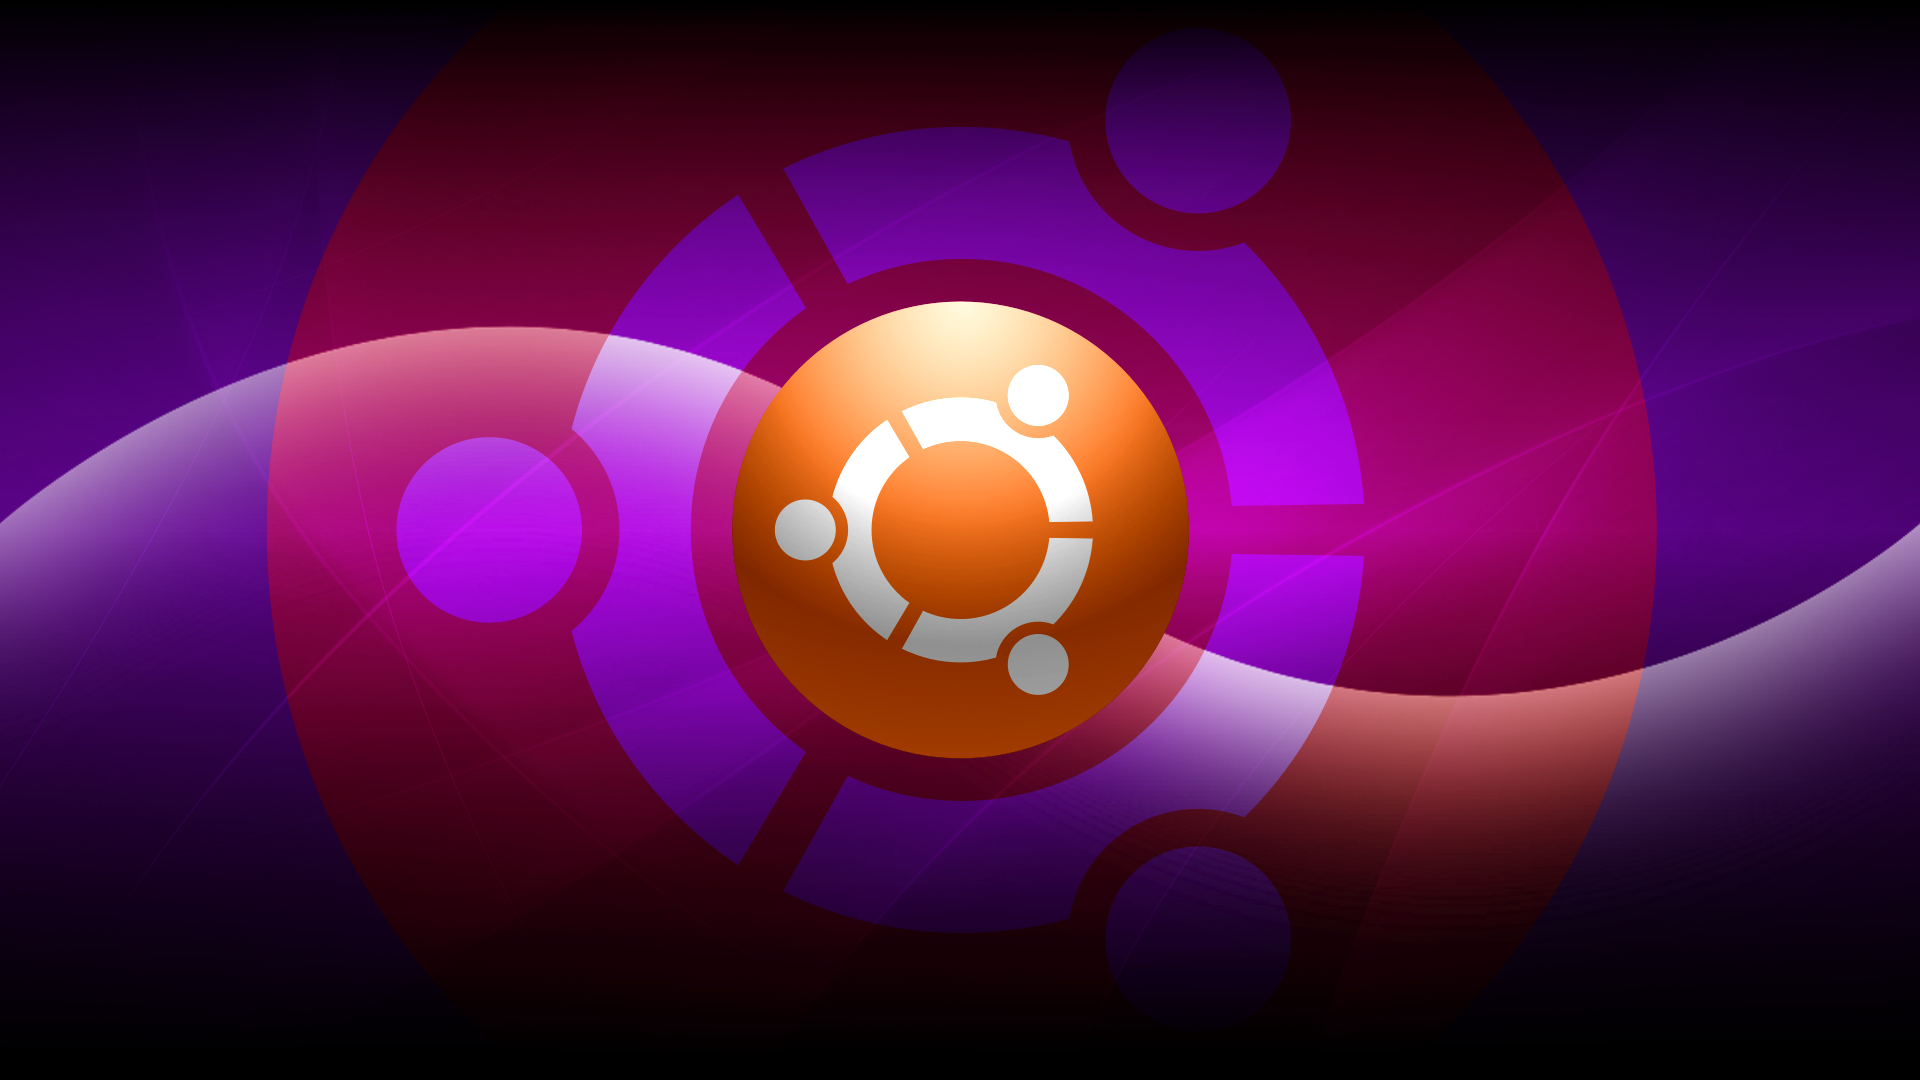 50 incredible ubuntu wallpaper collection  u2013 technosamrat